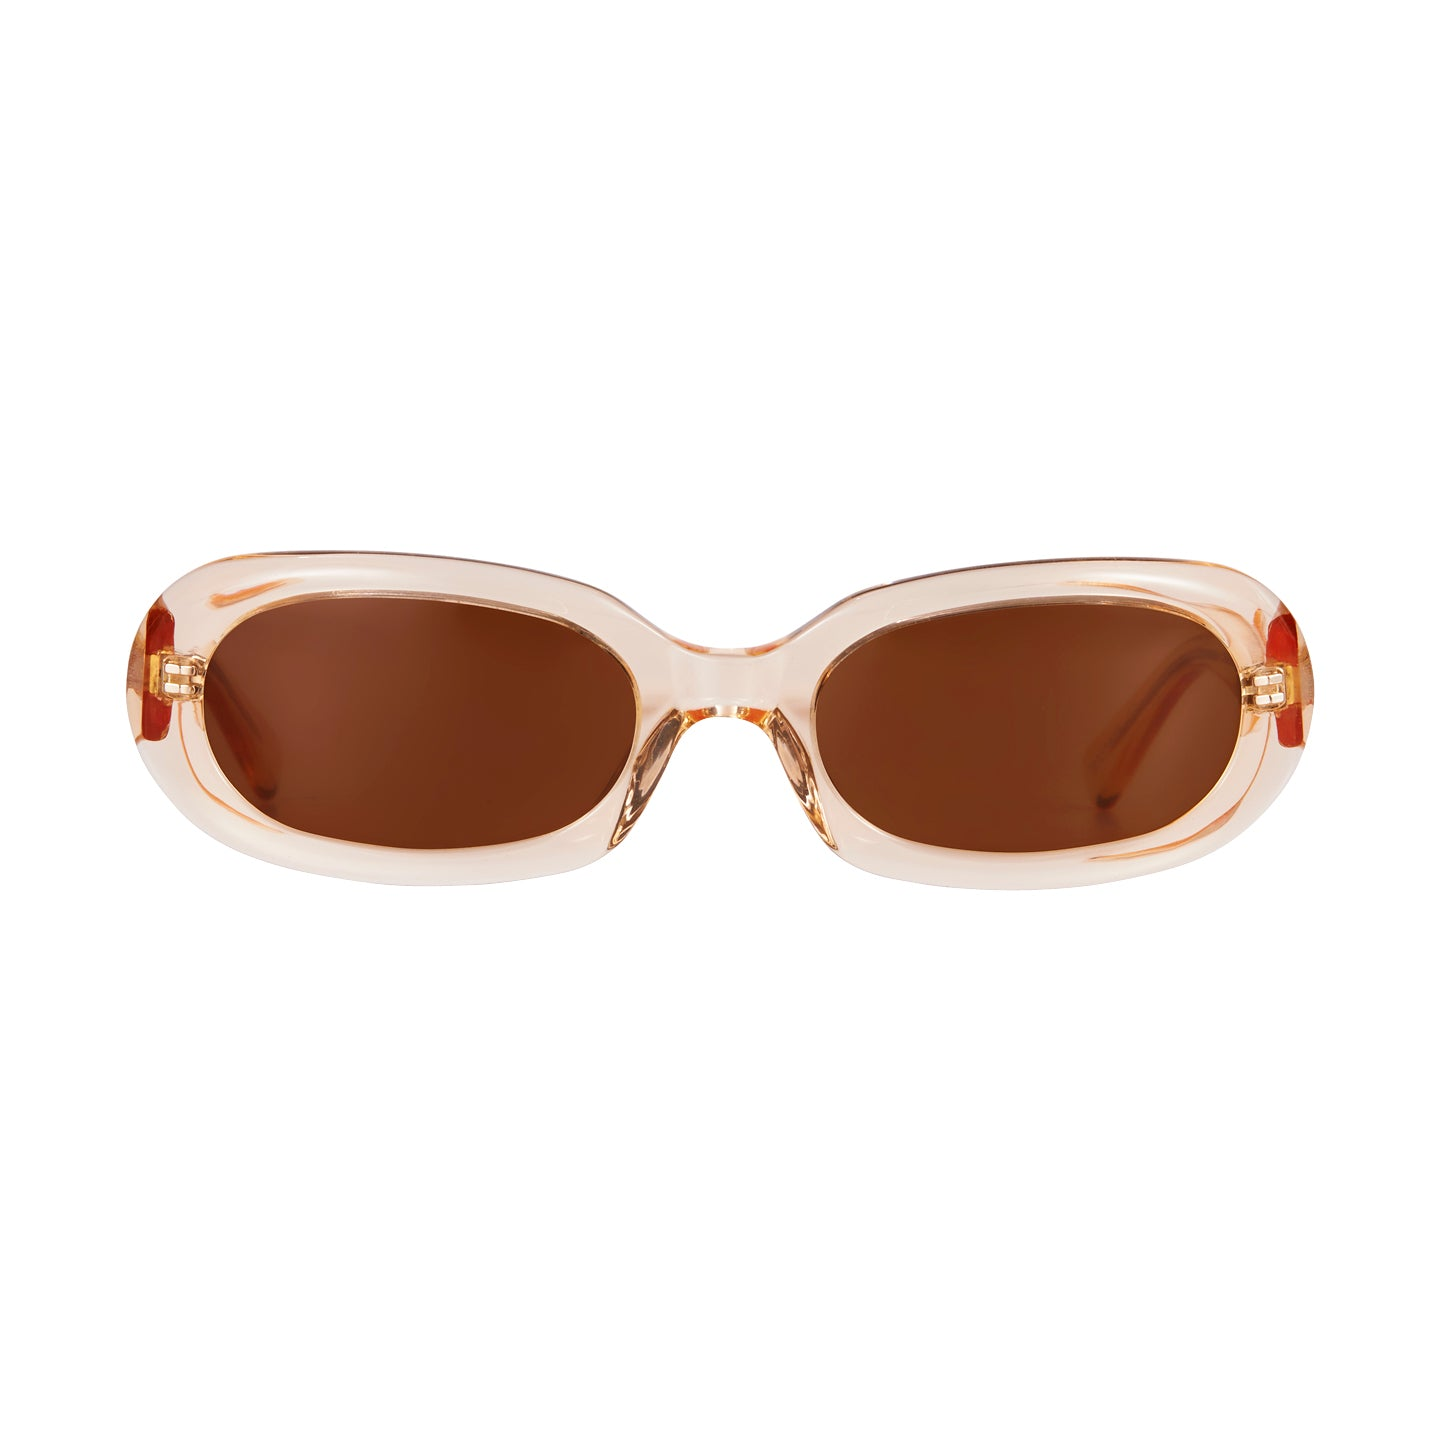 Retta Peach & Brown Sunglasses